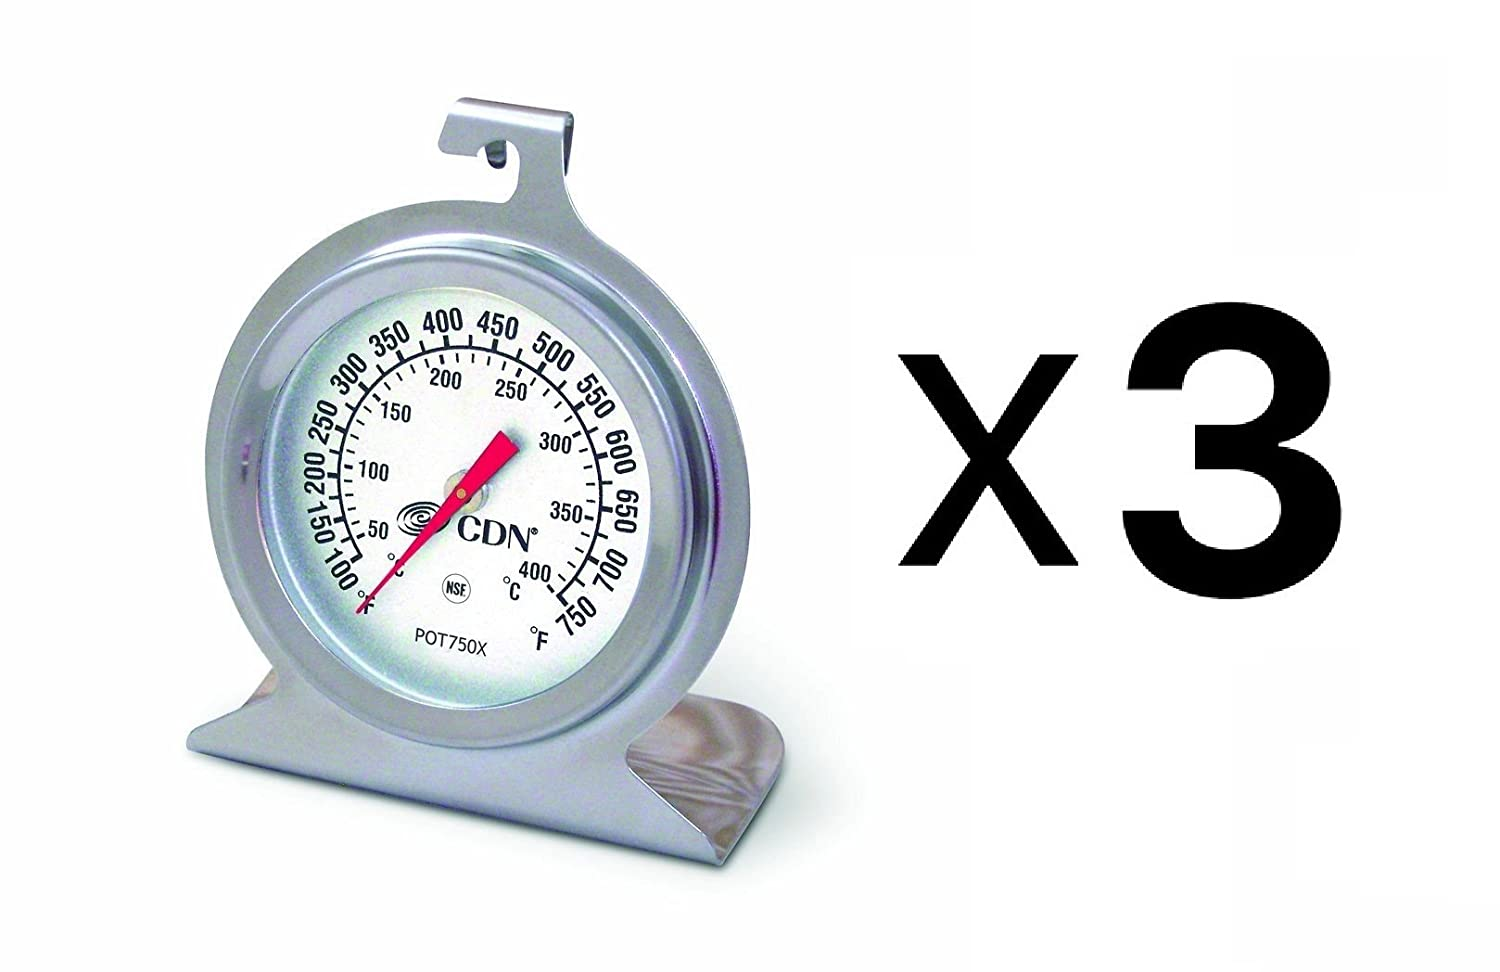 CDN POT750X High Heat Oven Thermometer (Pack of 3)